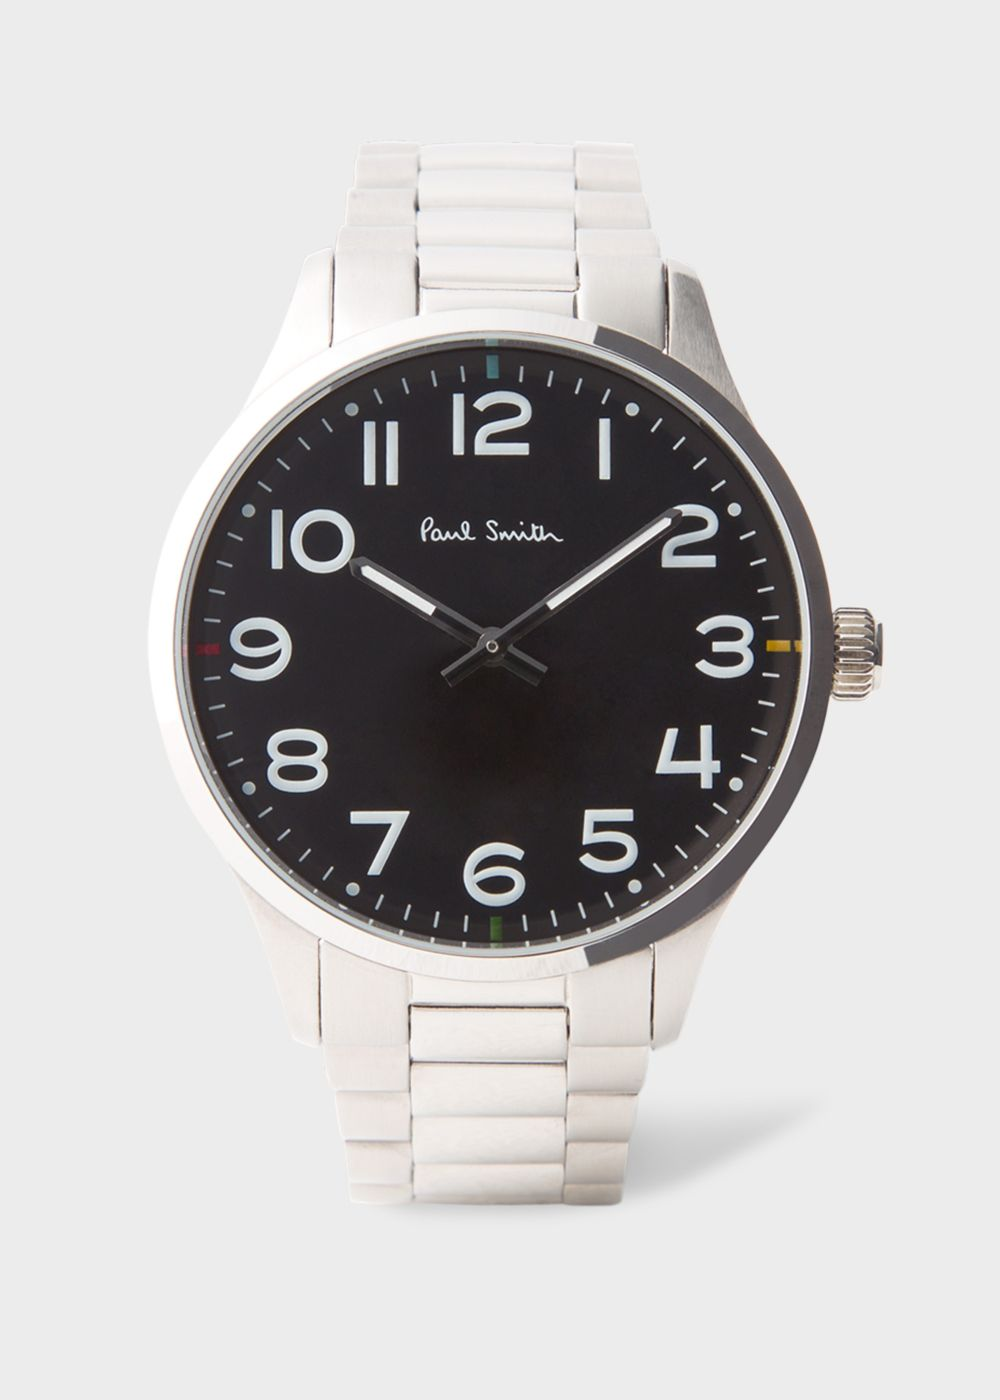 Paul Smith Men's Black And Stainless Steel 'Tempo' Watch